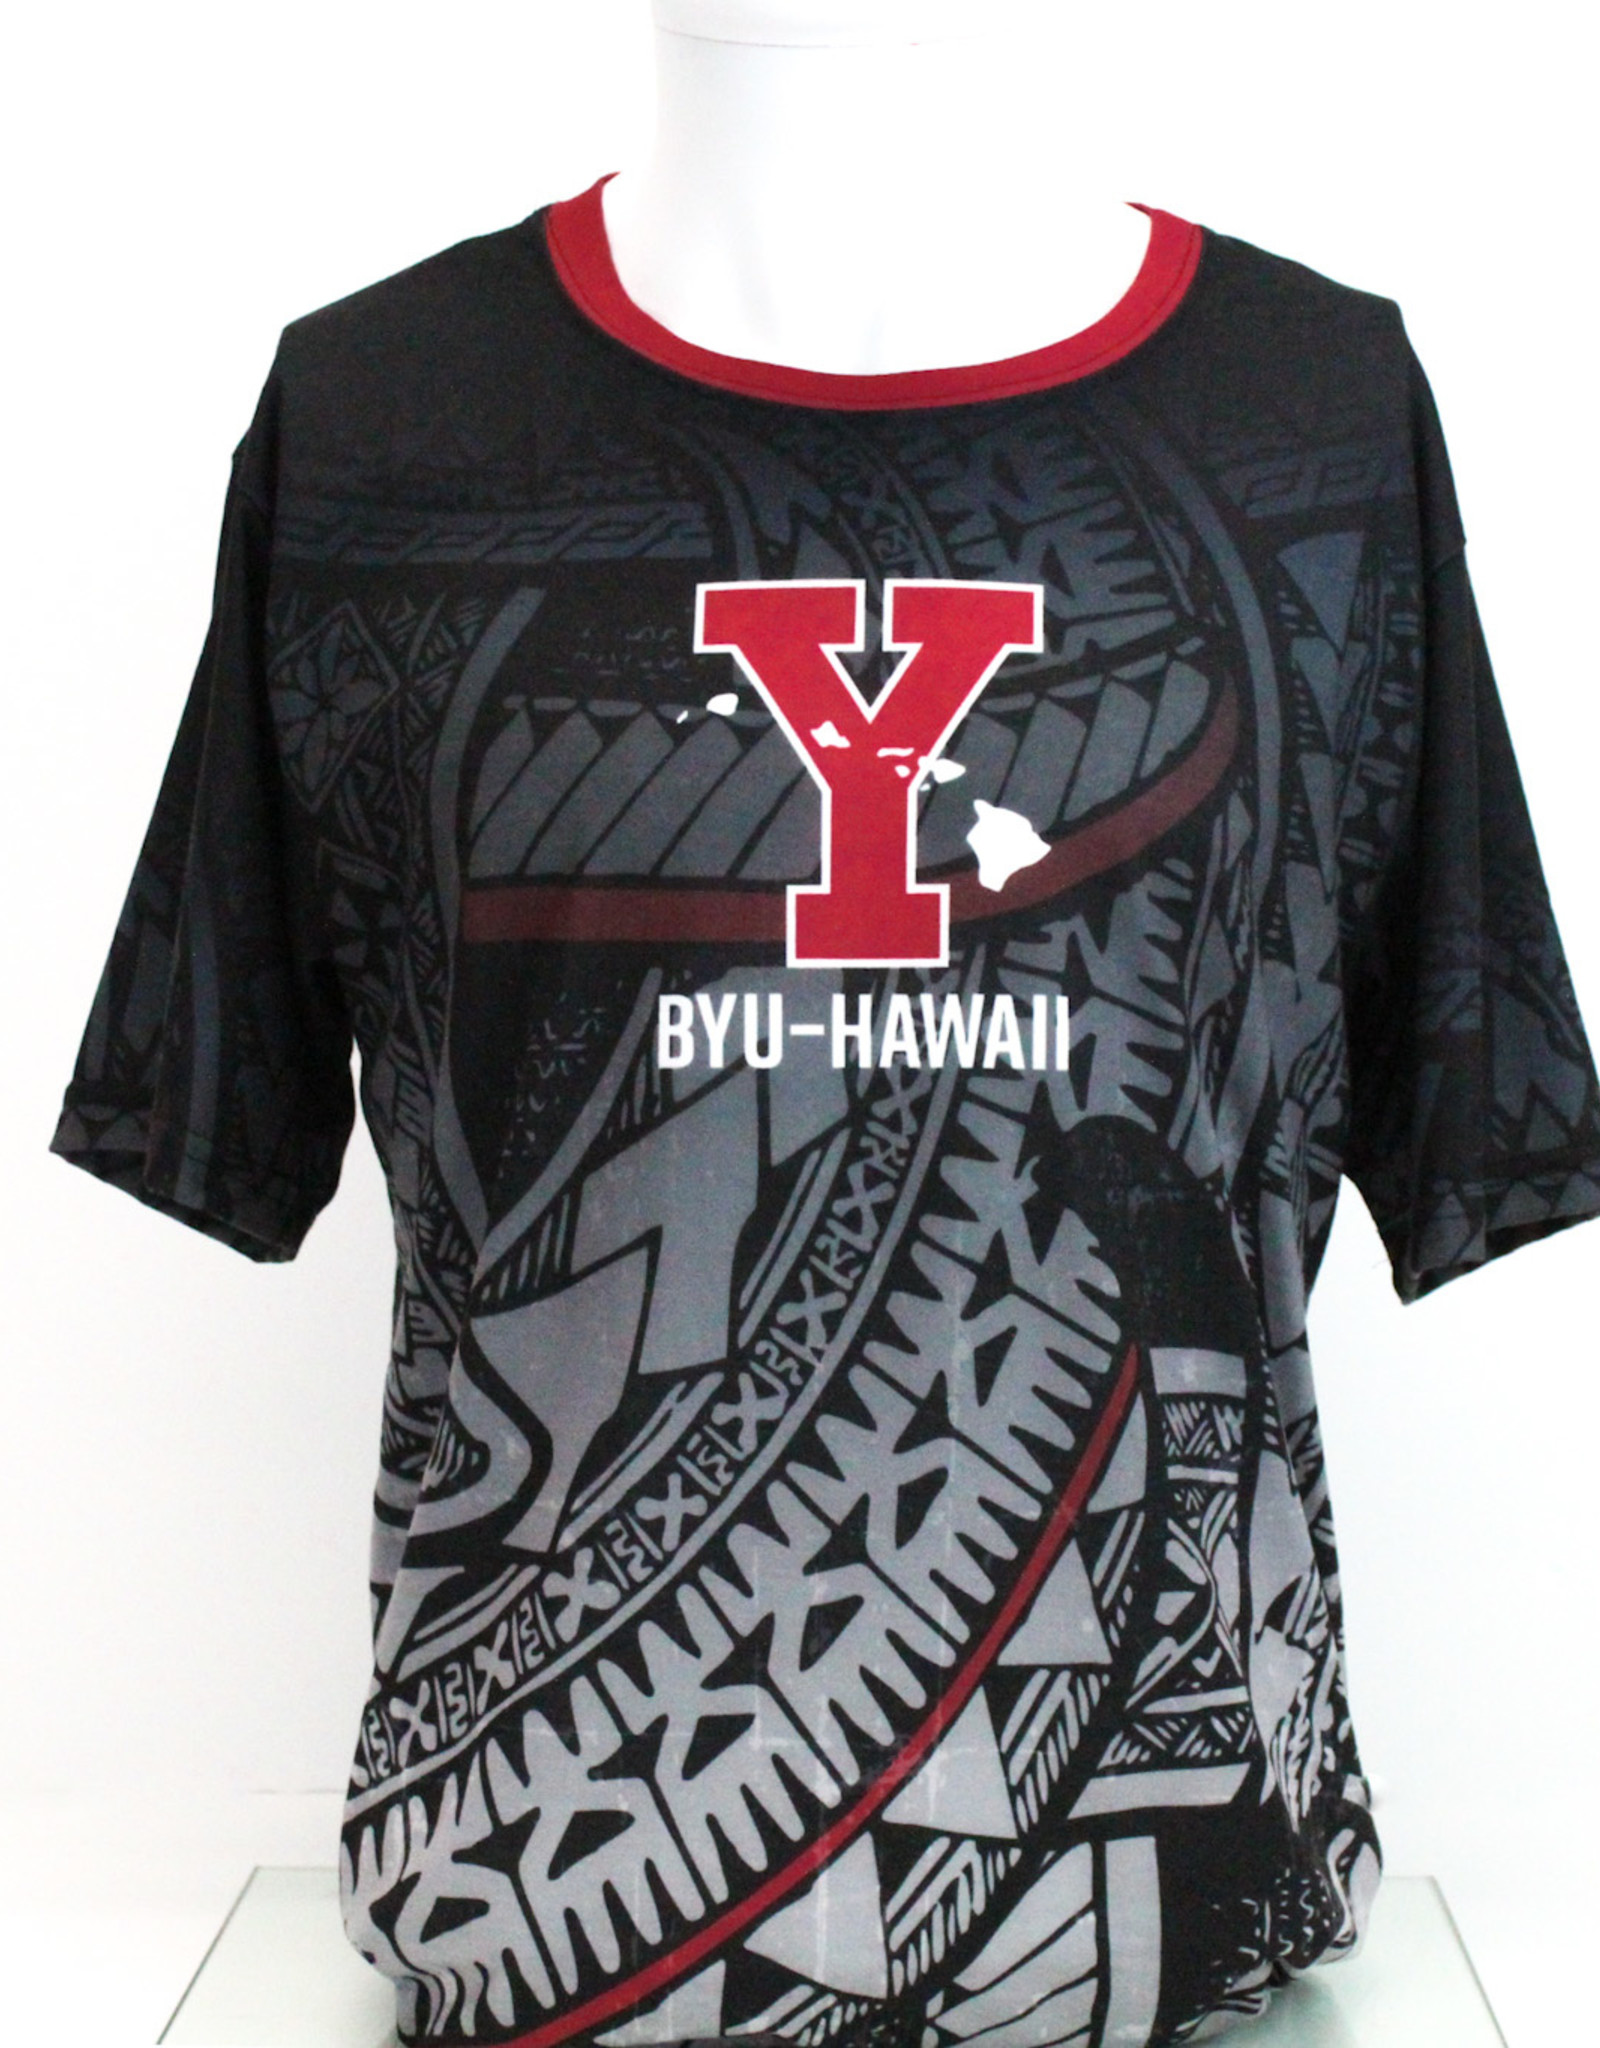 Men's BYU-Hawaii Tech Tee